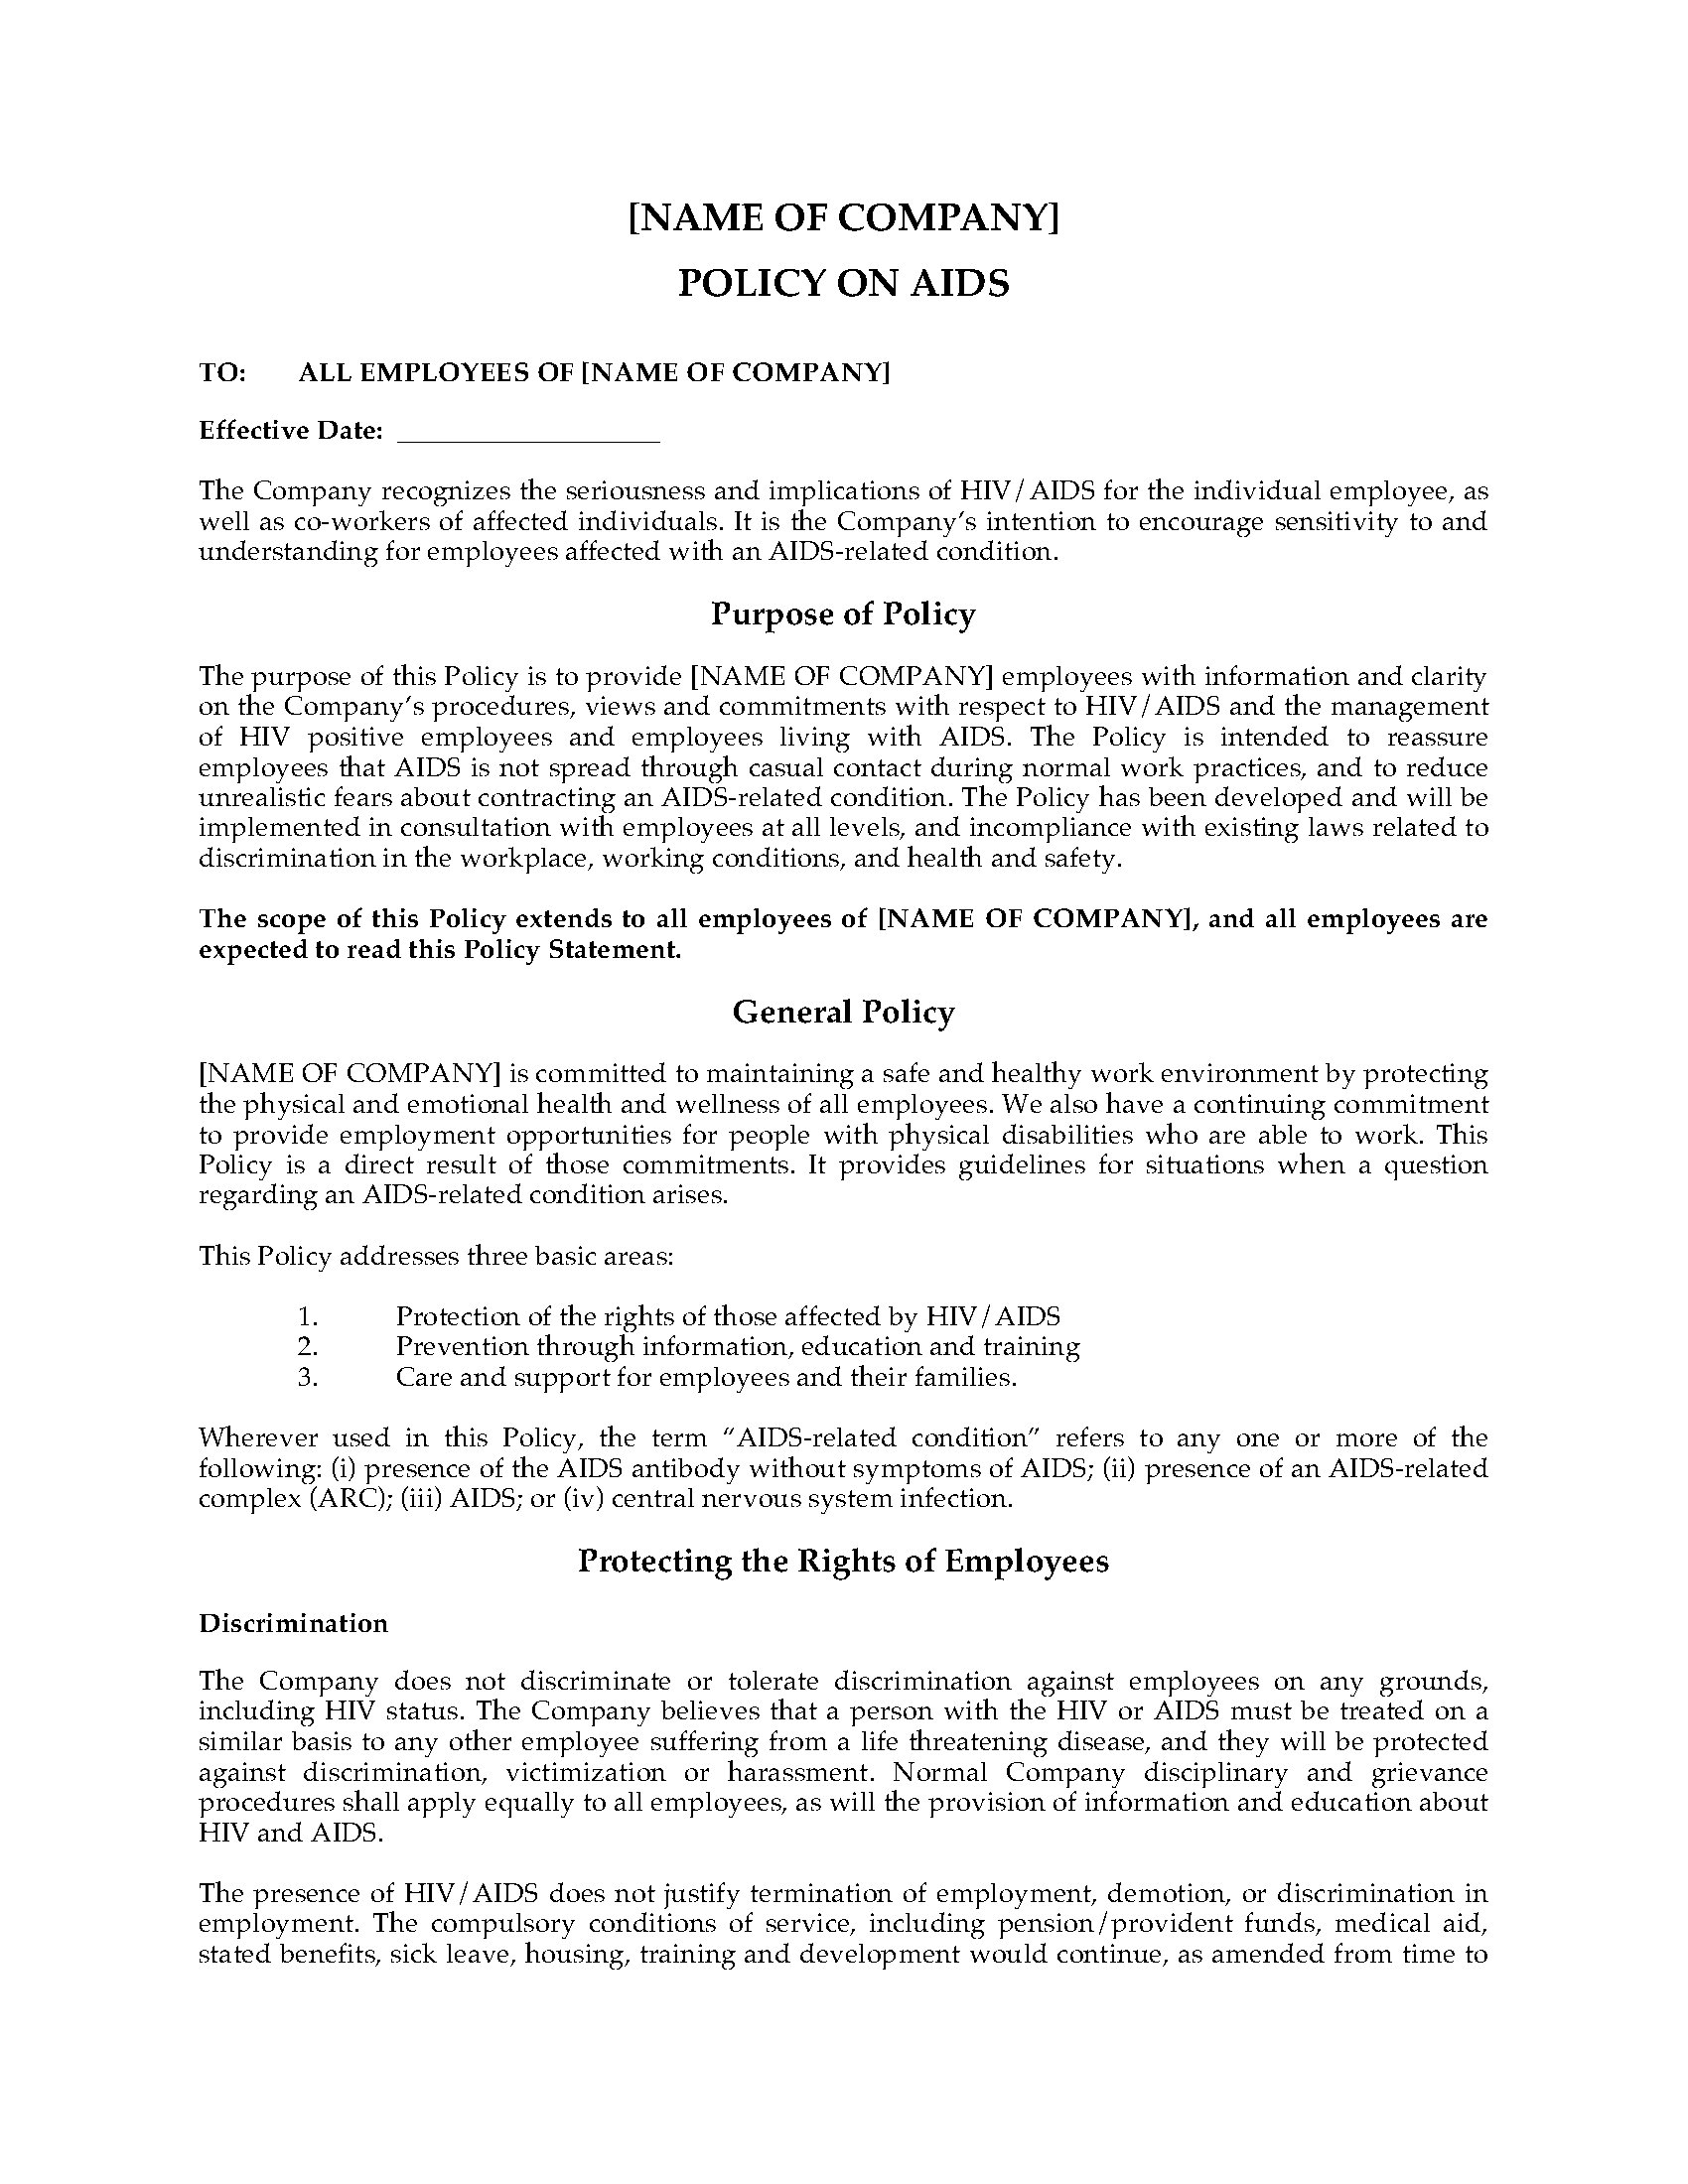 Aids and hiv company policy statement legal forms and for Drug free workplace policy template